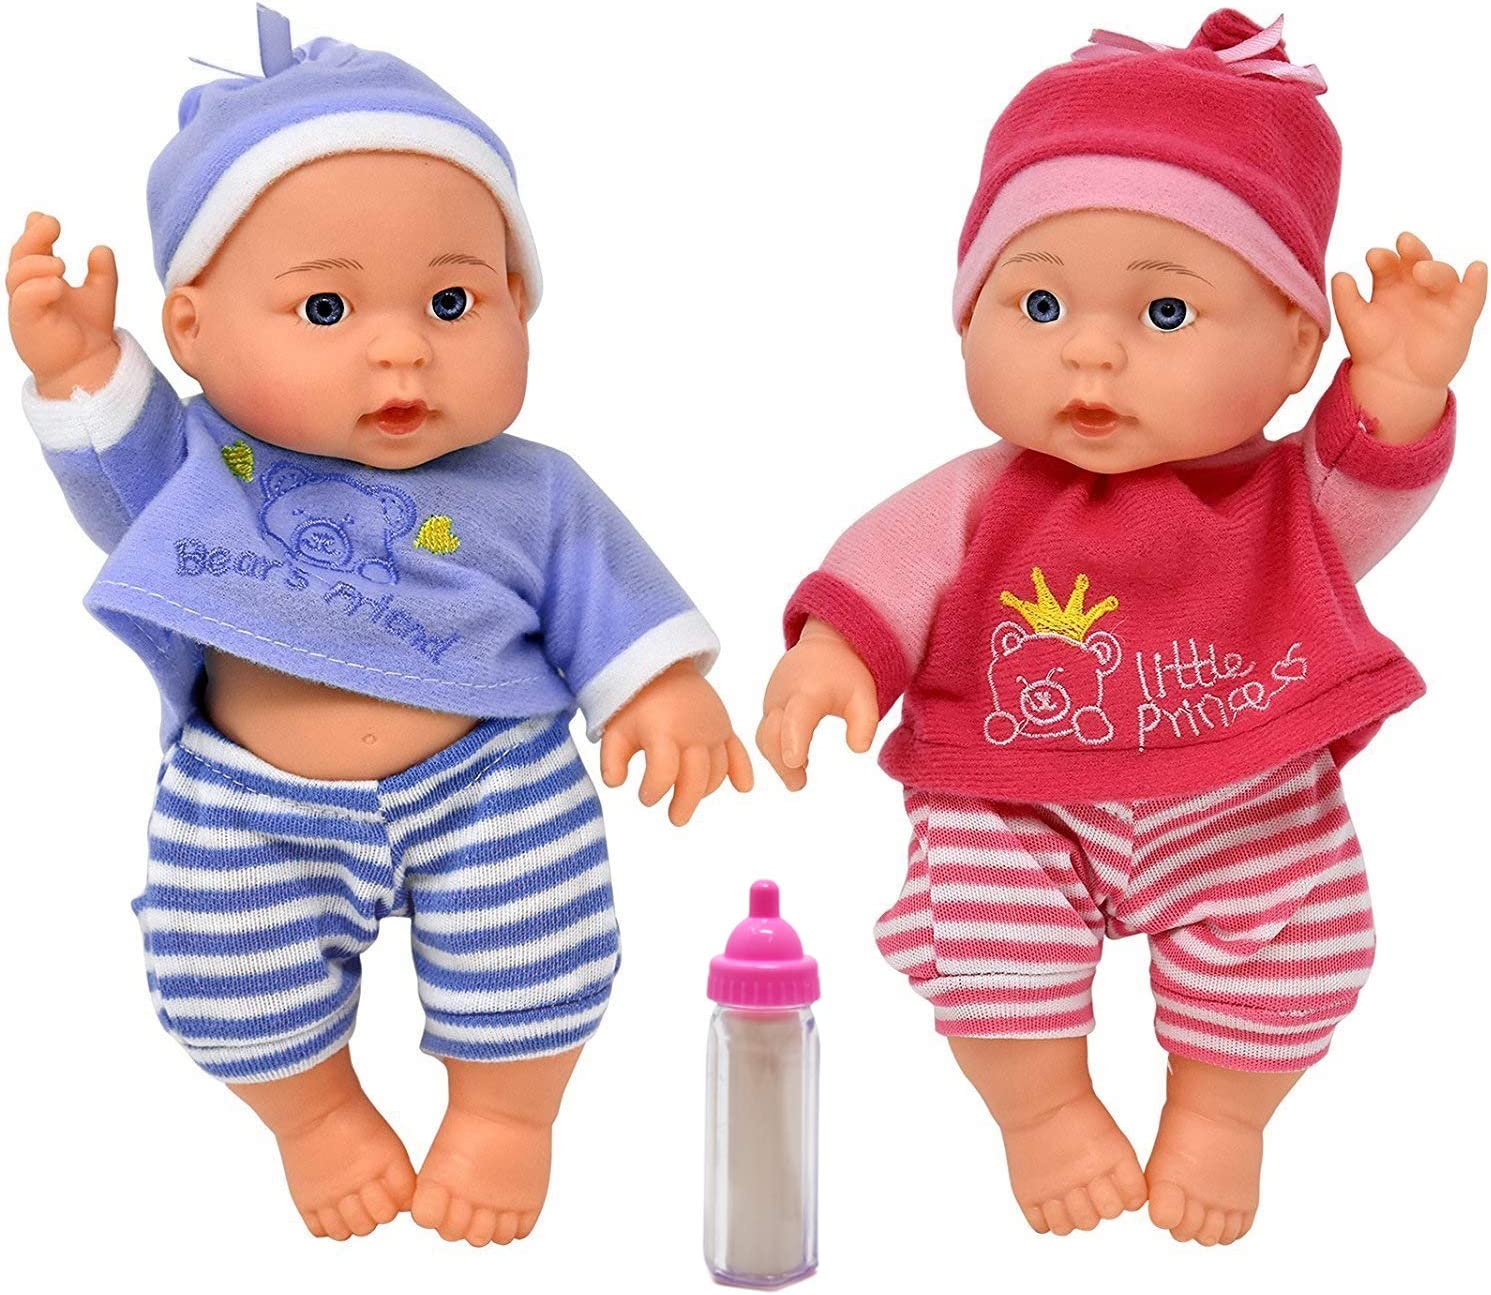 """Kids Baby Doll Twins Set 2 13/"""" Soft Toddler Toy Pretend Boy Girl Gift New"""